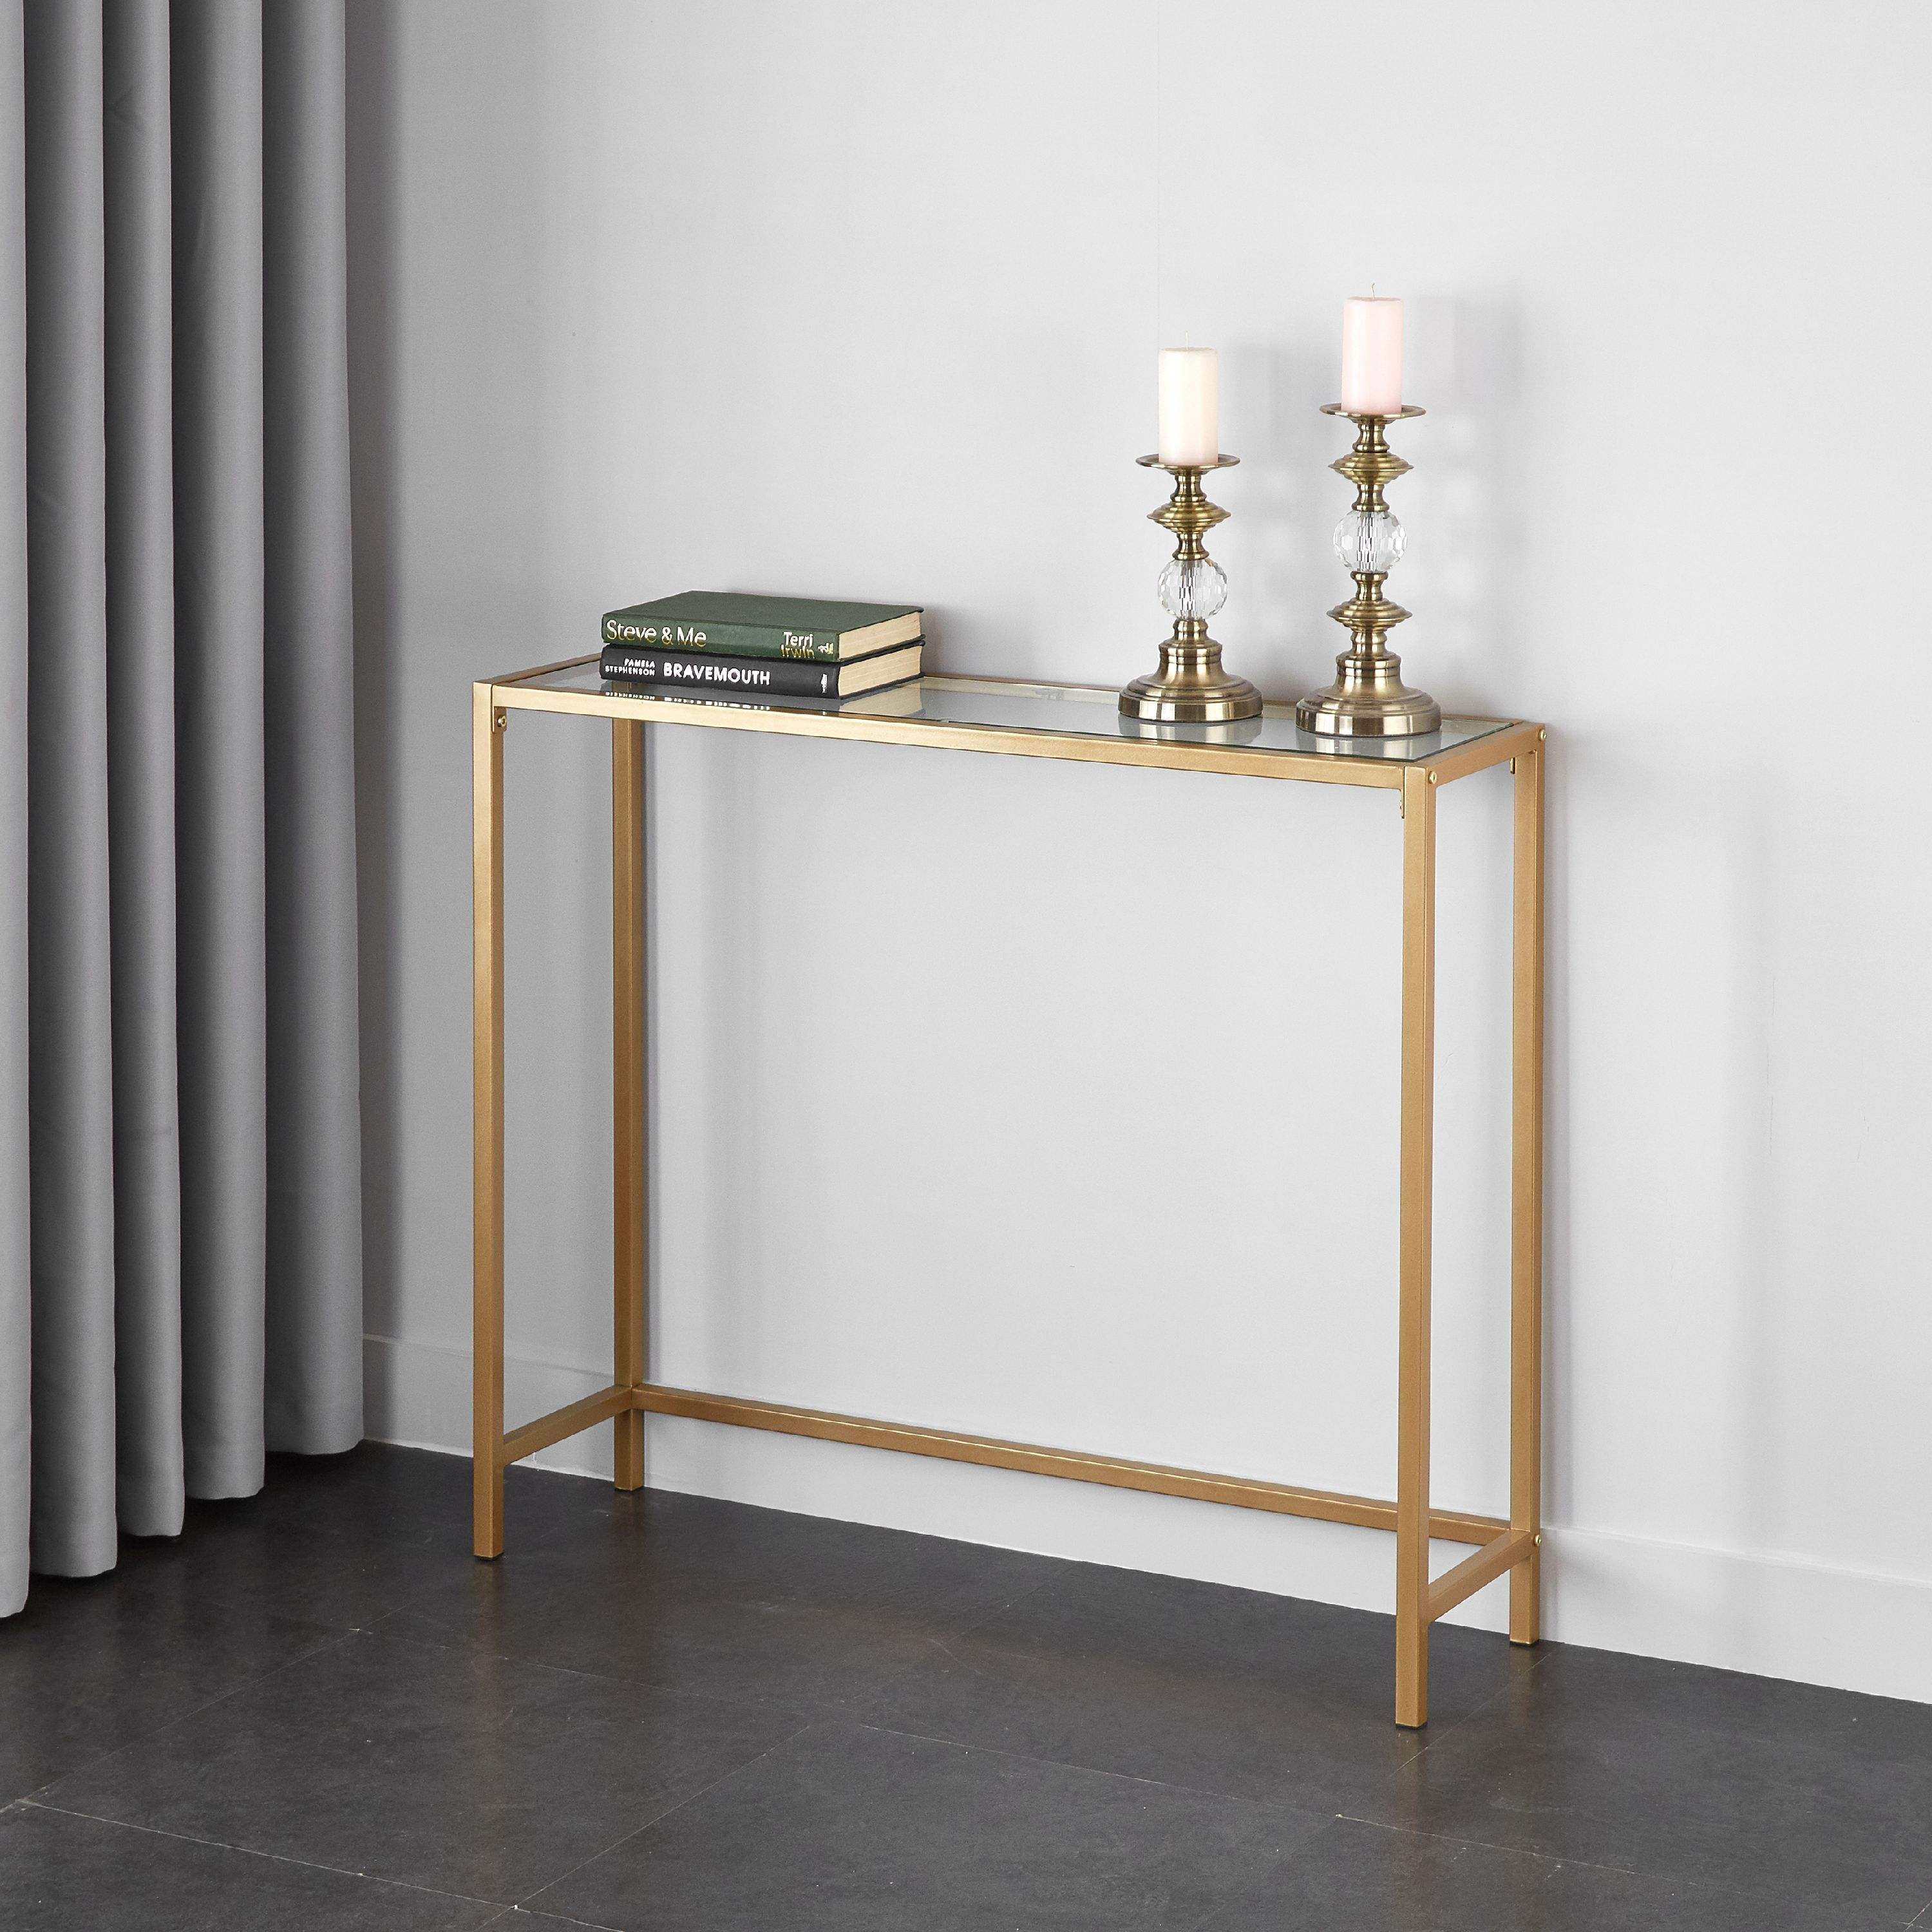 Mainstays Contemporary Tempered Glass And Metal Console Table Gold Finish Walmart Com In 2020 Metal Console Table Console Table Decorating Metal Console